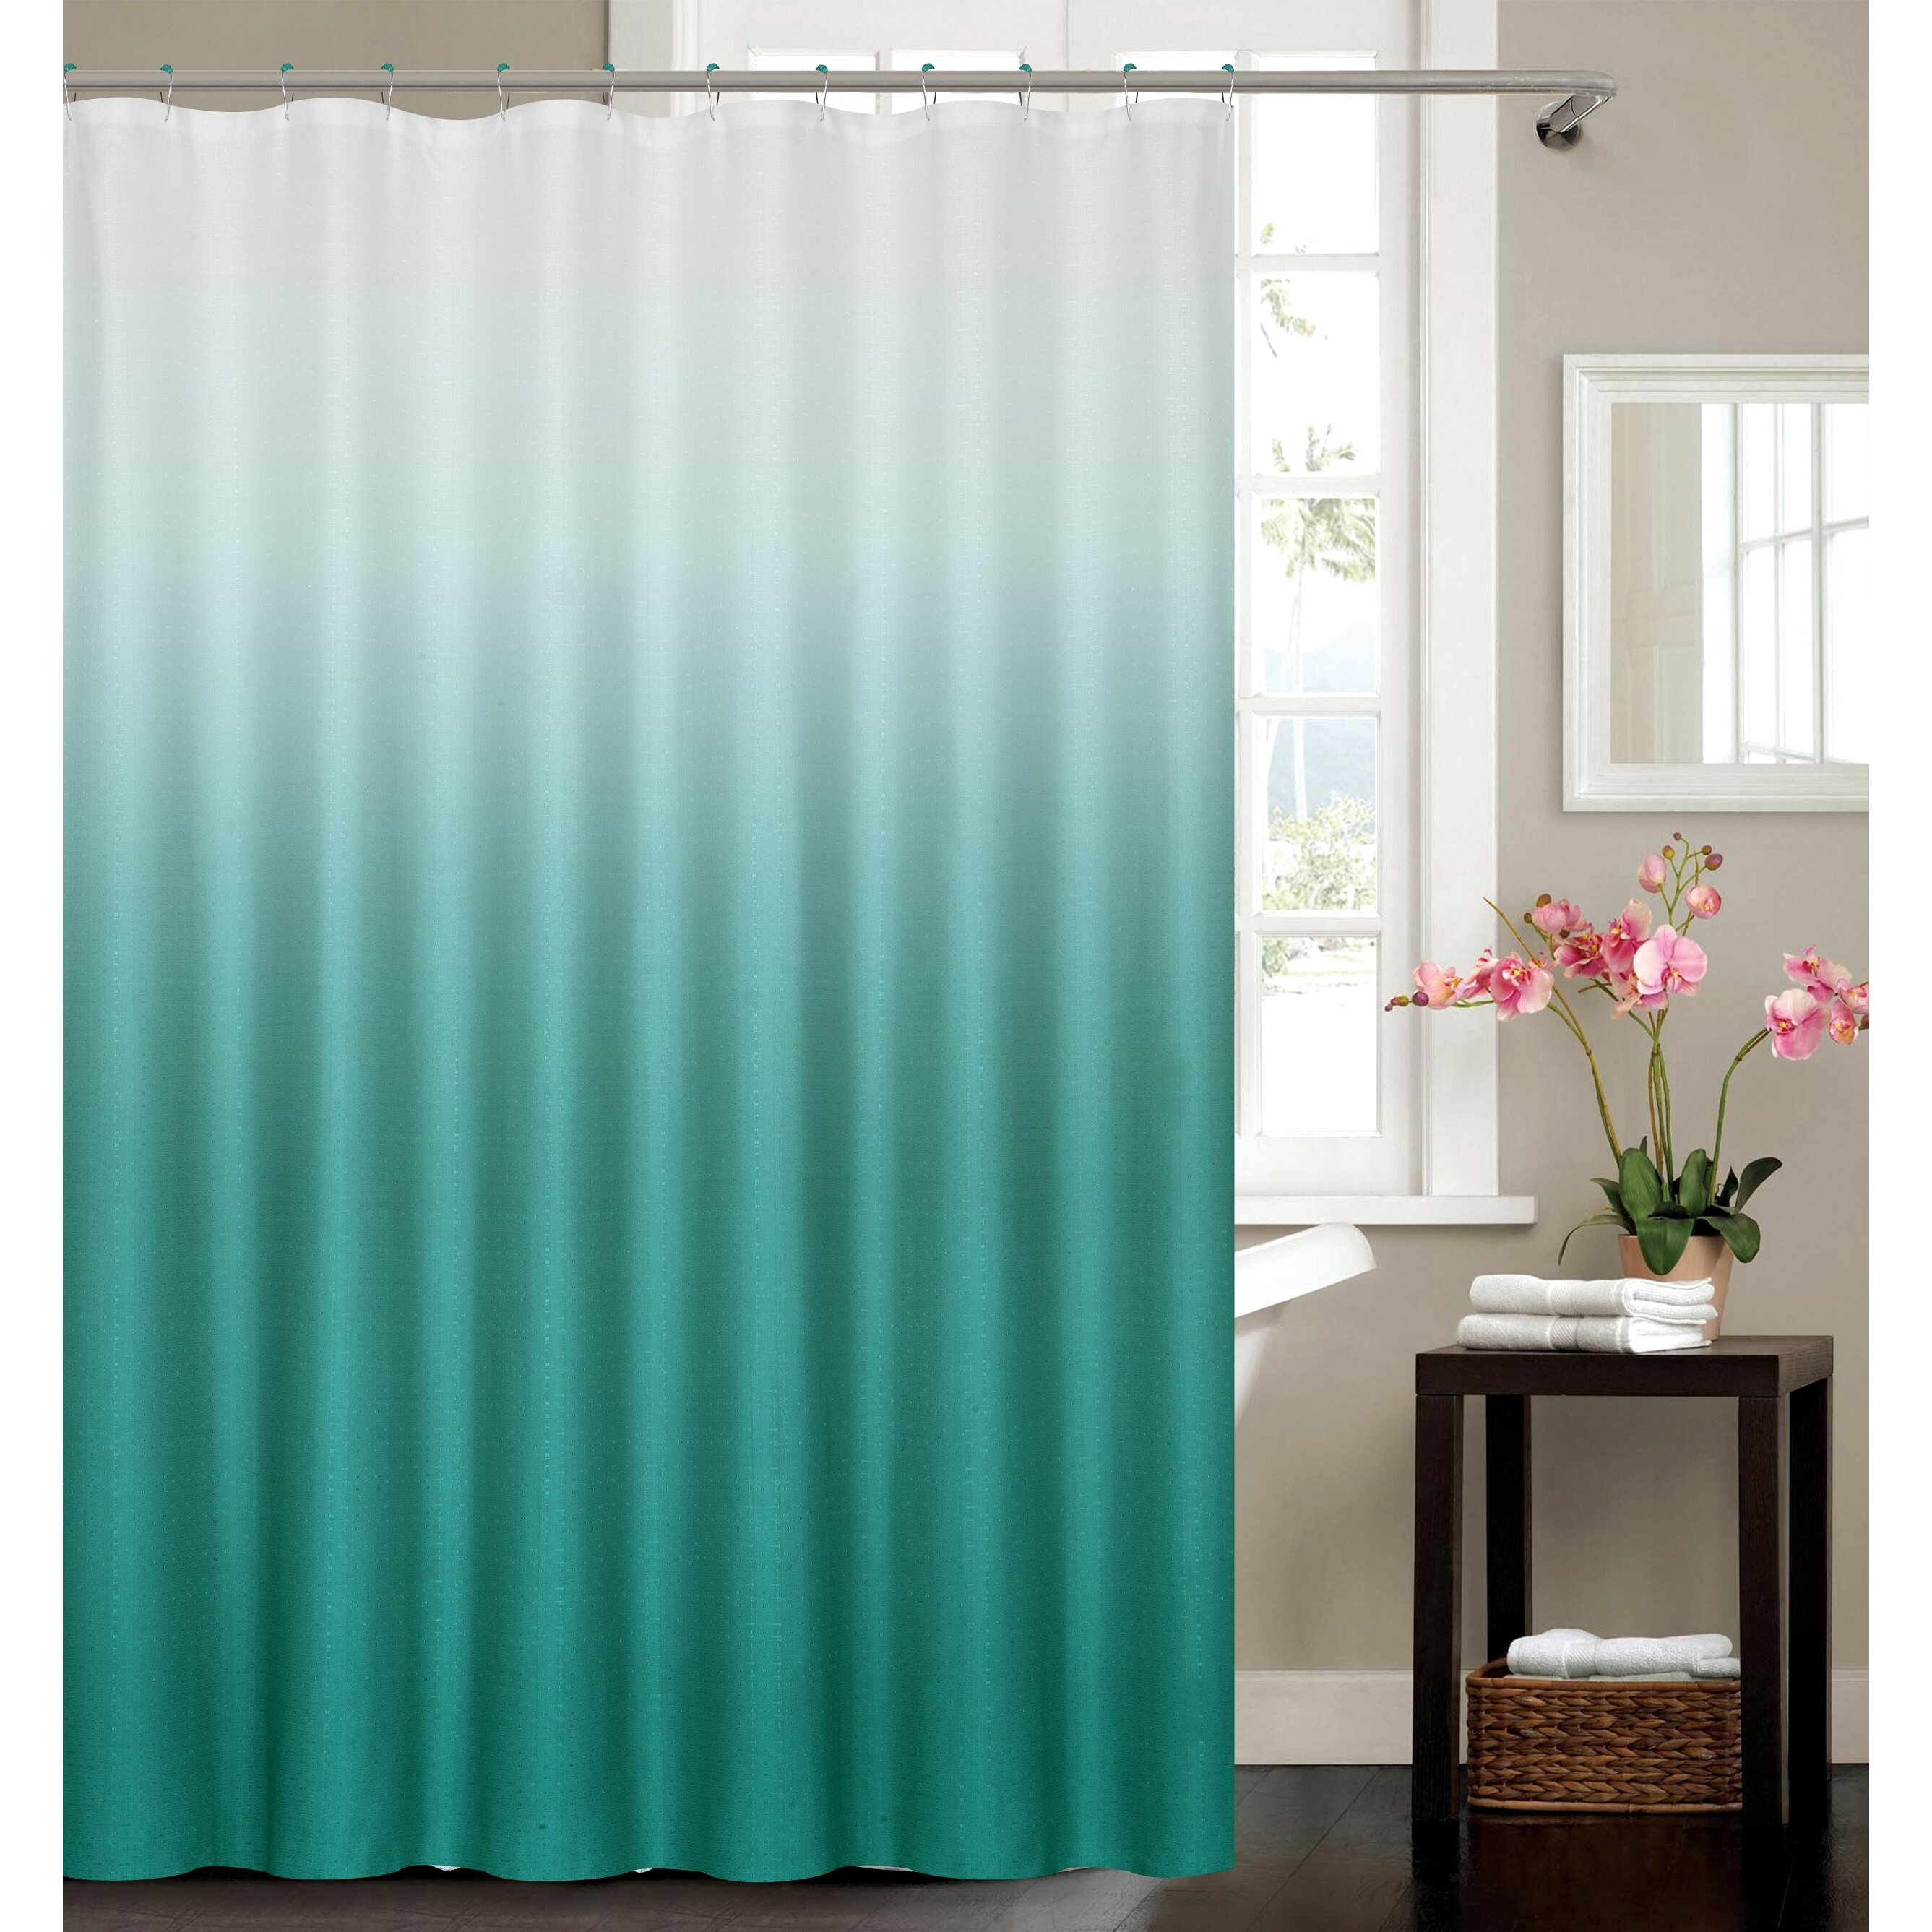 Where Can I Find Shower Curtains | Homeminimalis.com